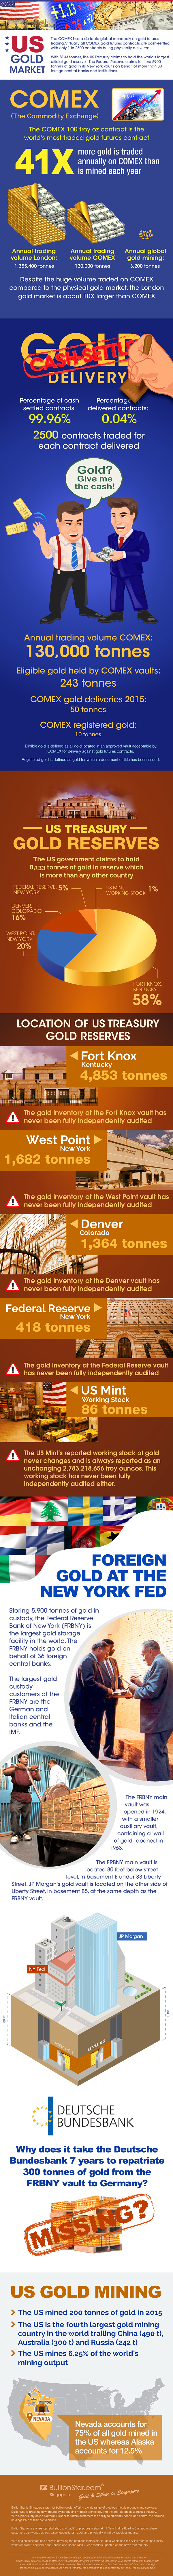 Infographic on COMEX gold futures market, the world's largest gold futures market